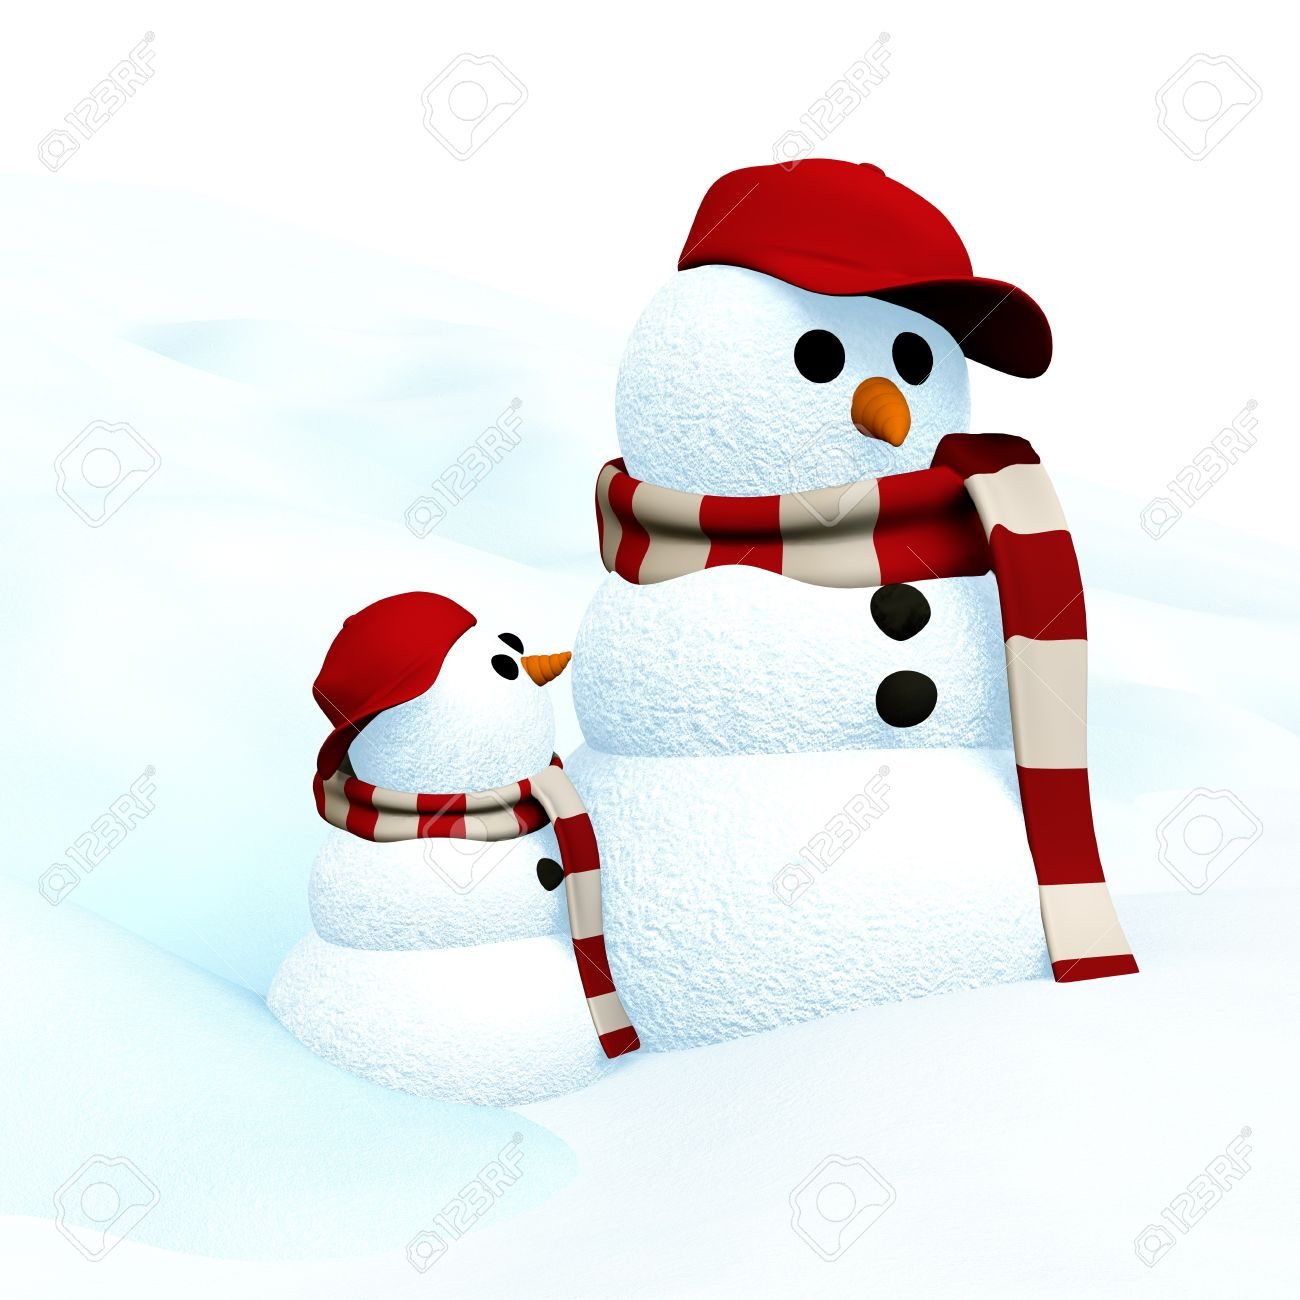 3D Illustration, little snowman is looking up to big snowman Stock Illustration - 11448859